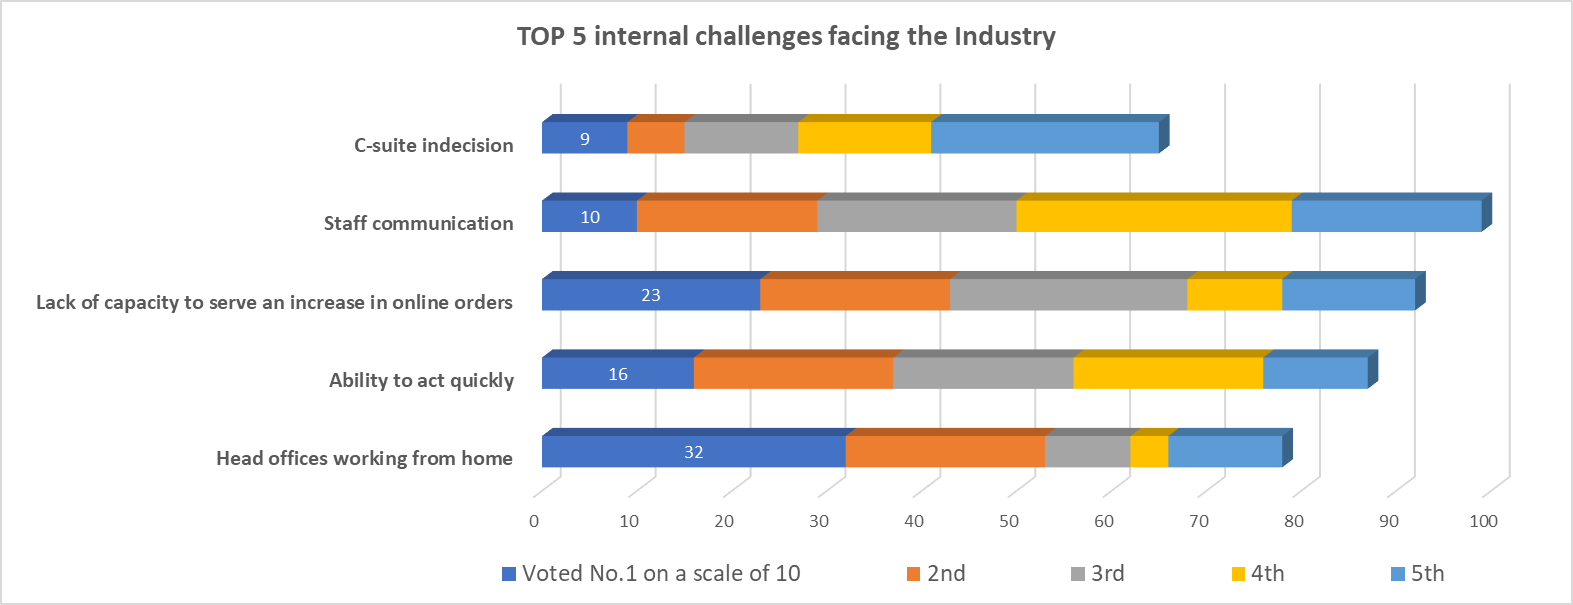 Top challenges for the industry